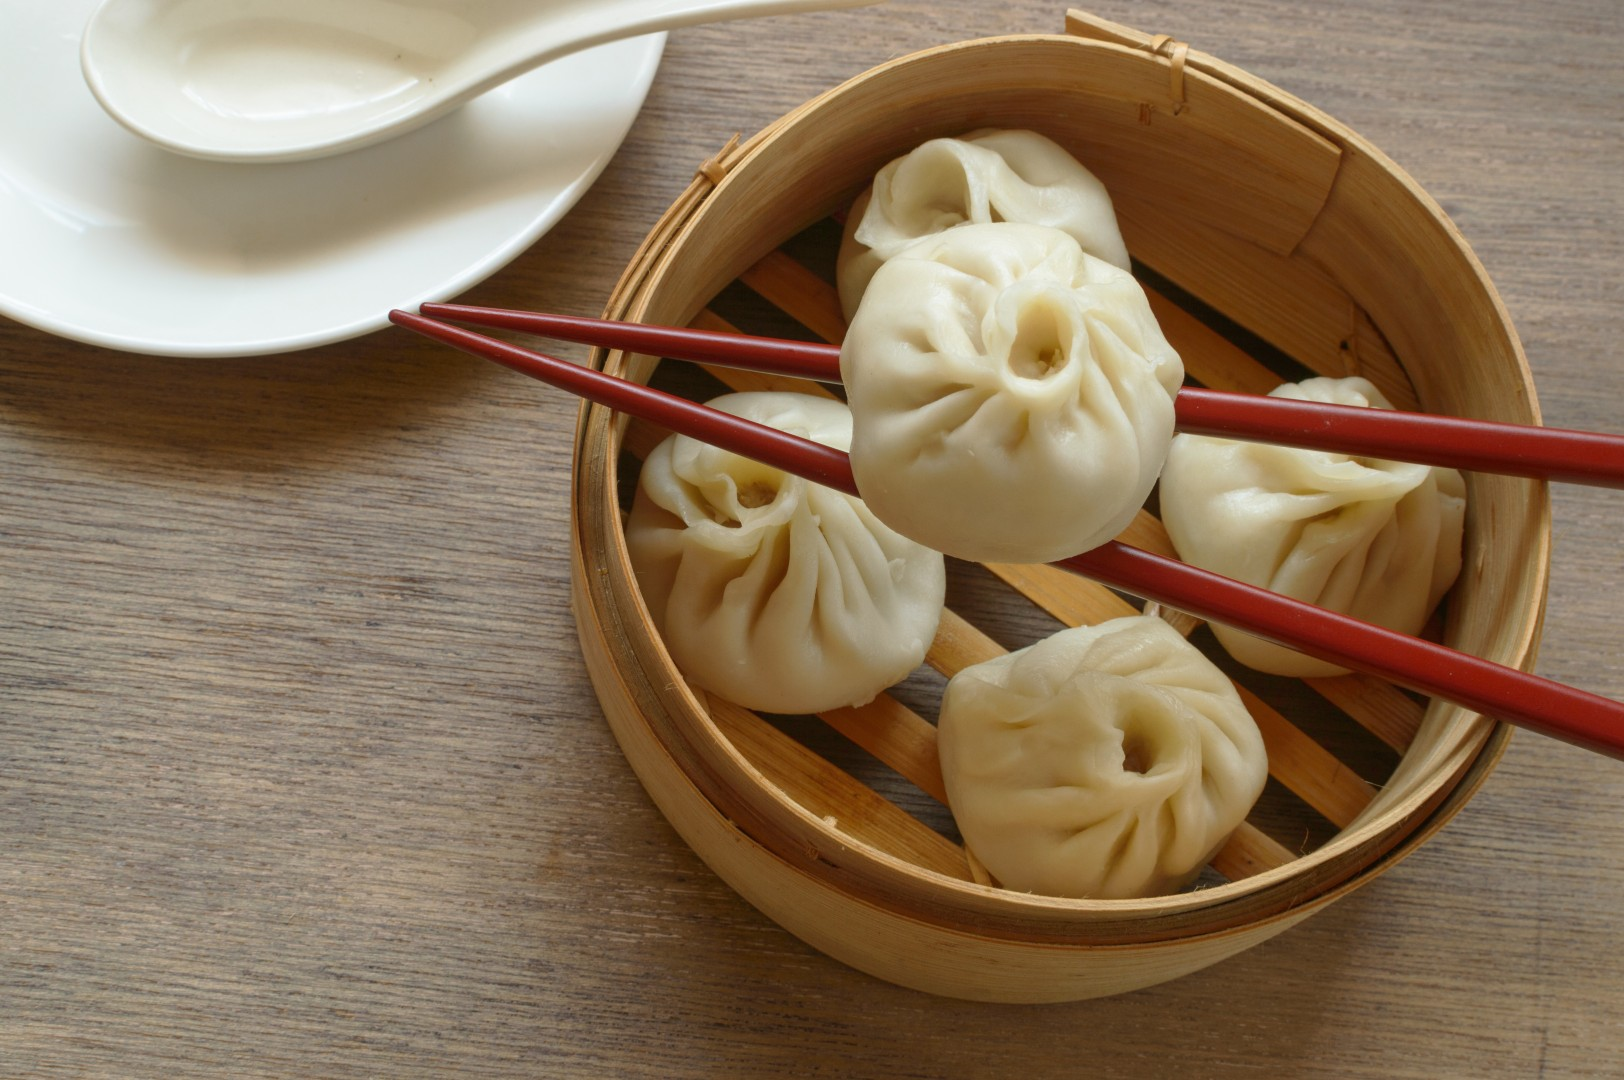 The seven best Hong Kong restaurants for xiaolongbao, Shanghainese